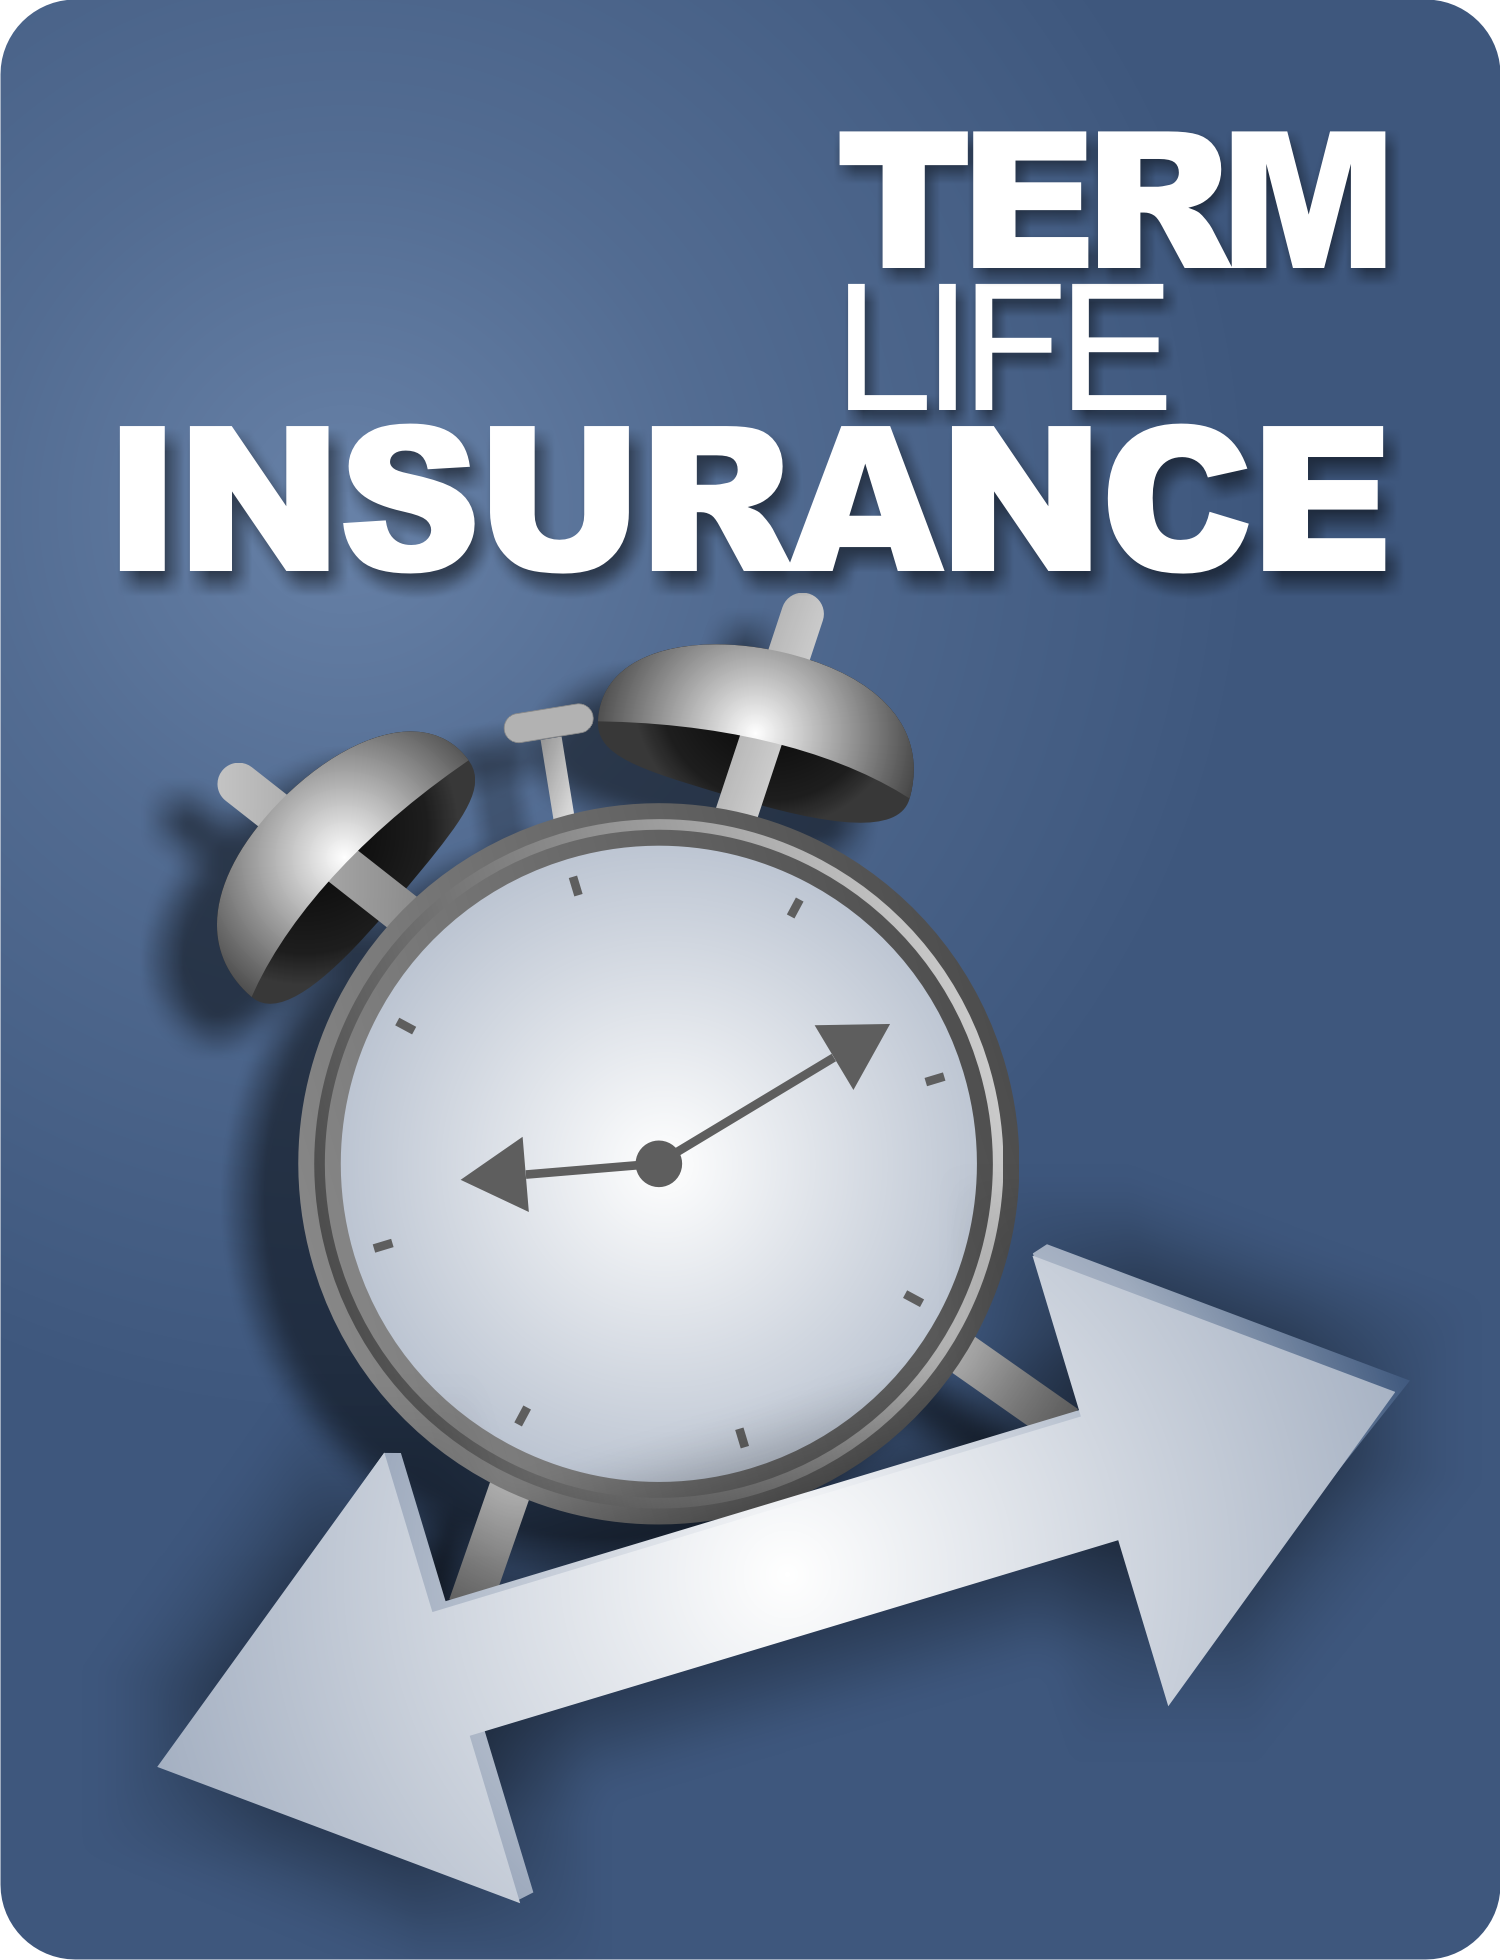 Online Whole Life Insurance Quotes Extraordinary Don't Wait Until It's Too Late Protect Your Family With A Term